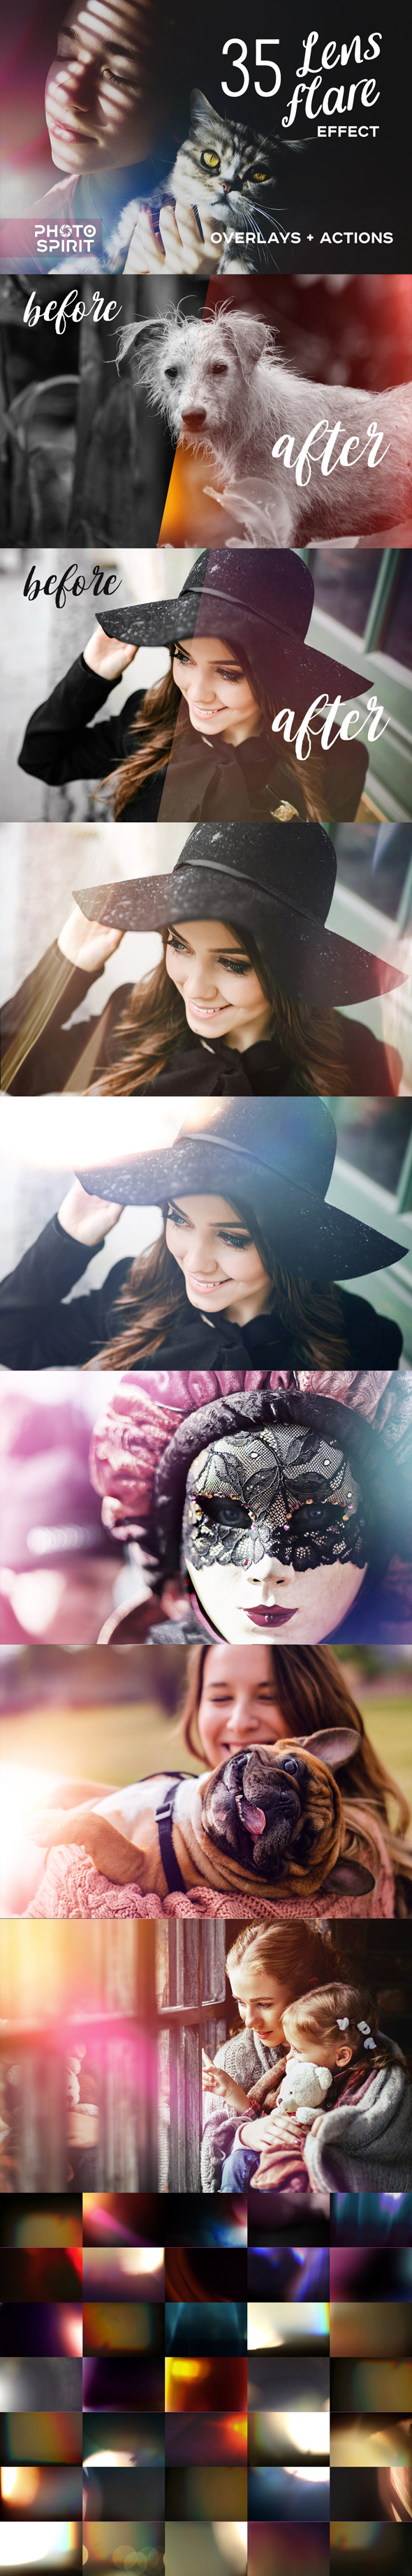 GraphicRiver Lens Flare Effect Photoshop 21088846